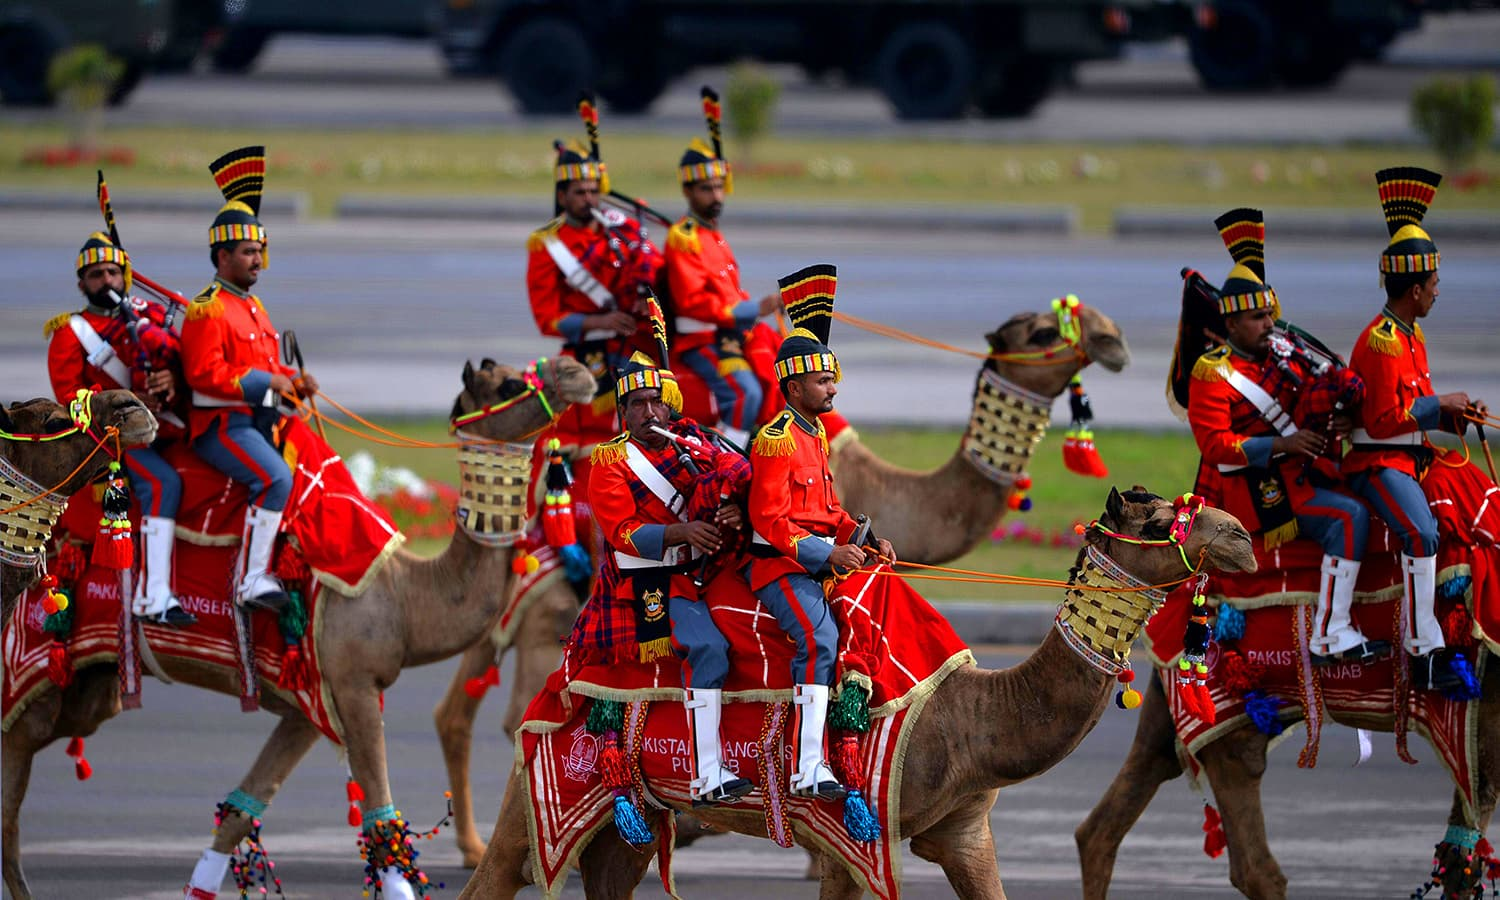 A camel-mounted military band performs during the Pakistan Day military parade. ─ AFP